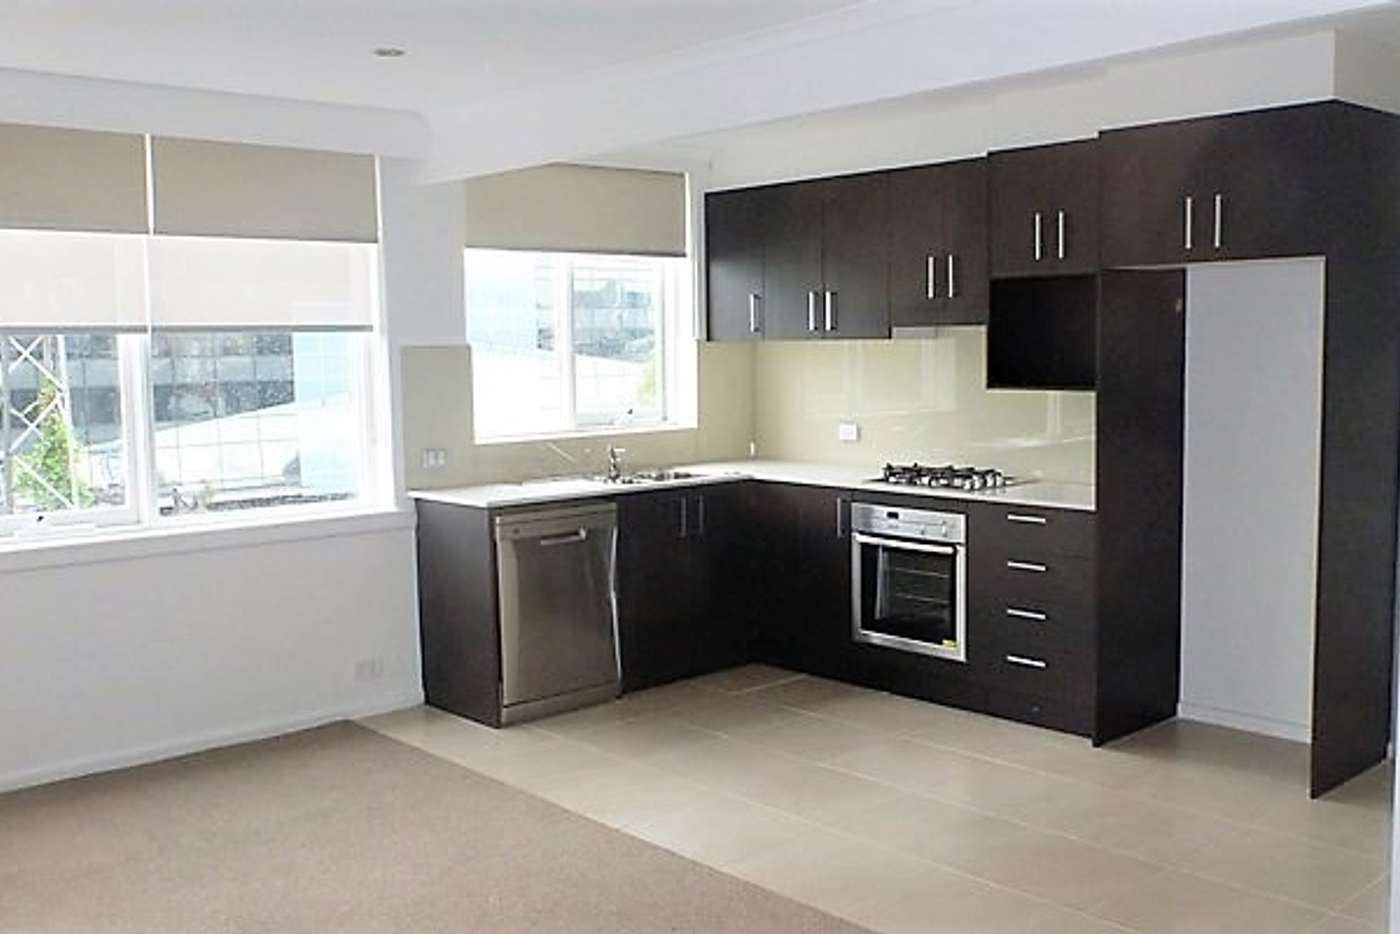 Main view of Homely unit listing, 13/22 Darling Street, South Yarra VIC 3141